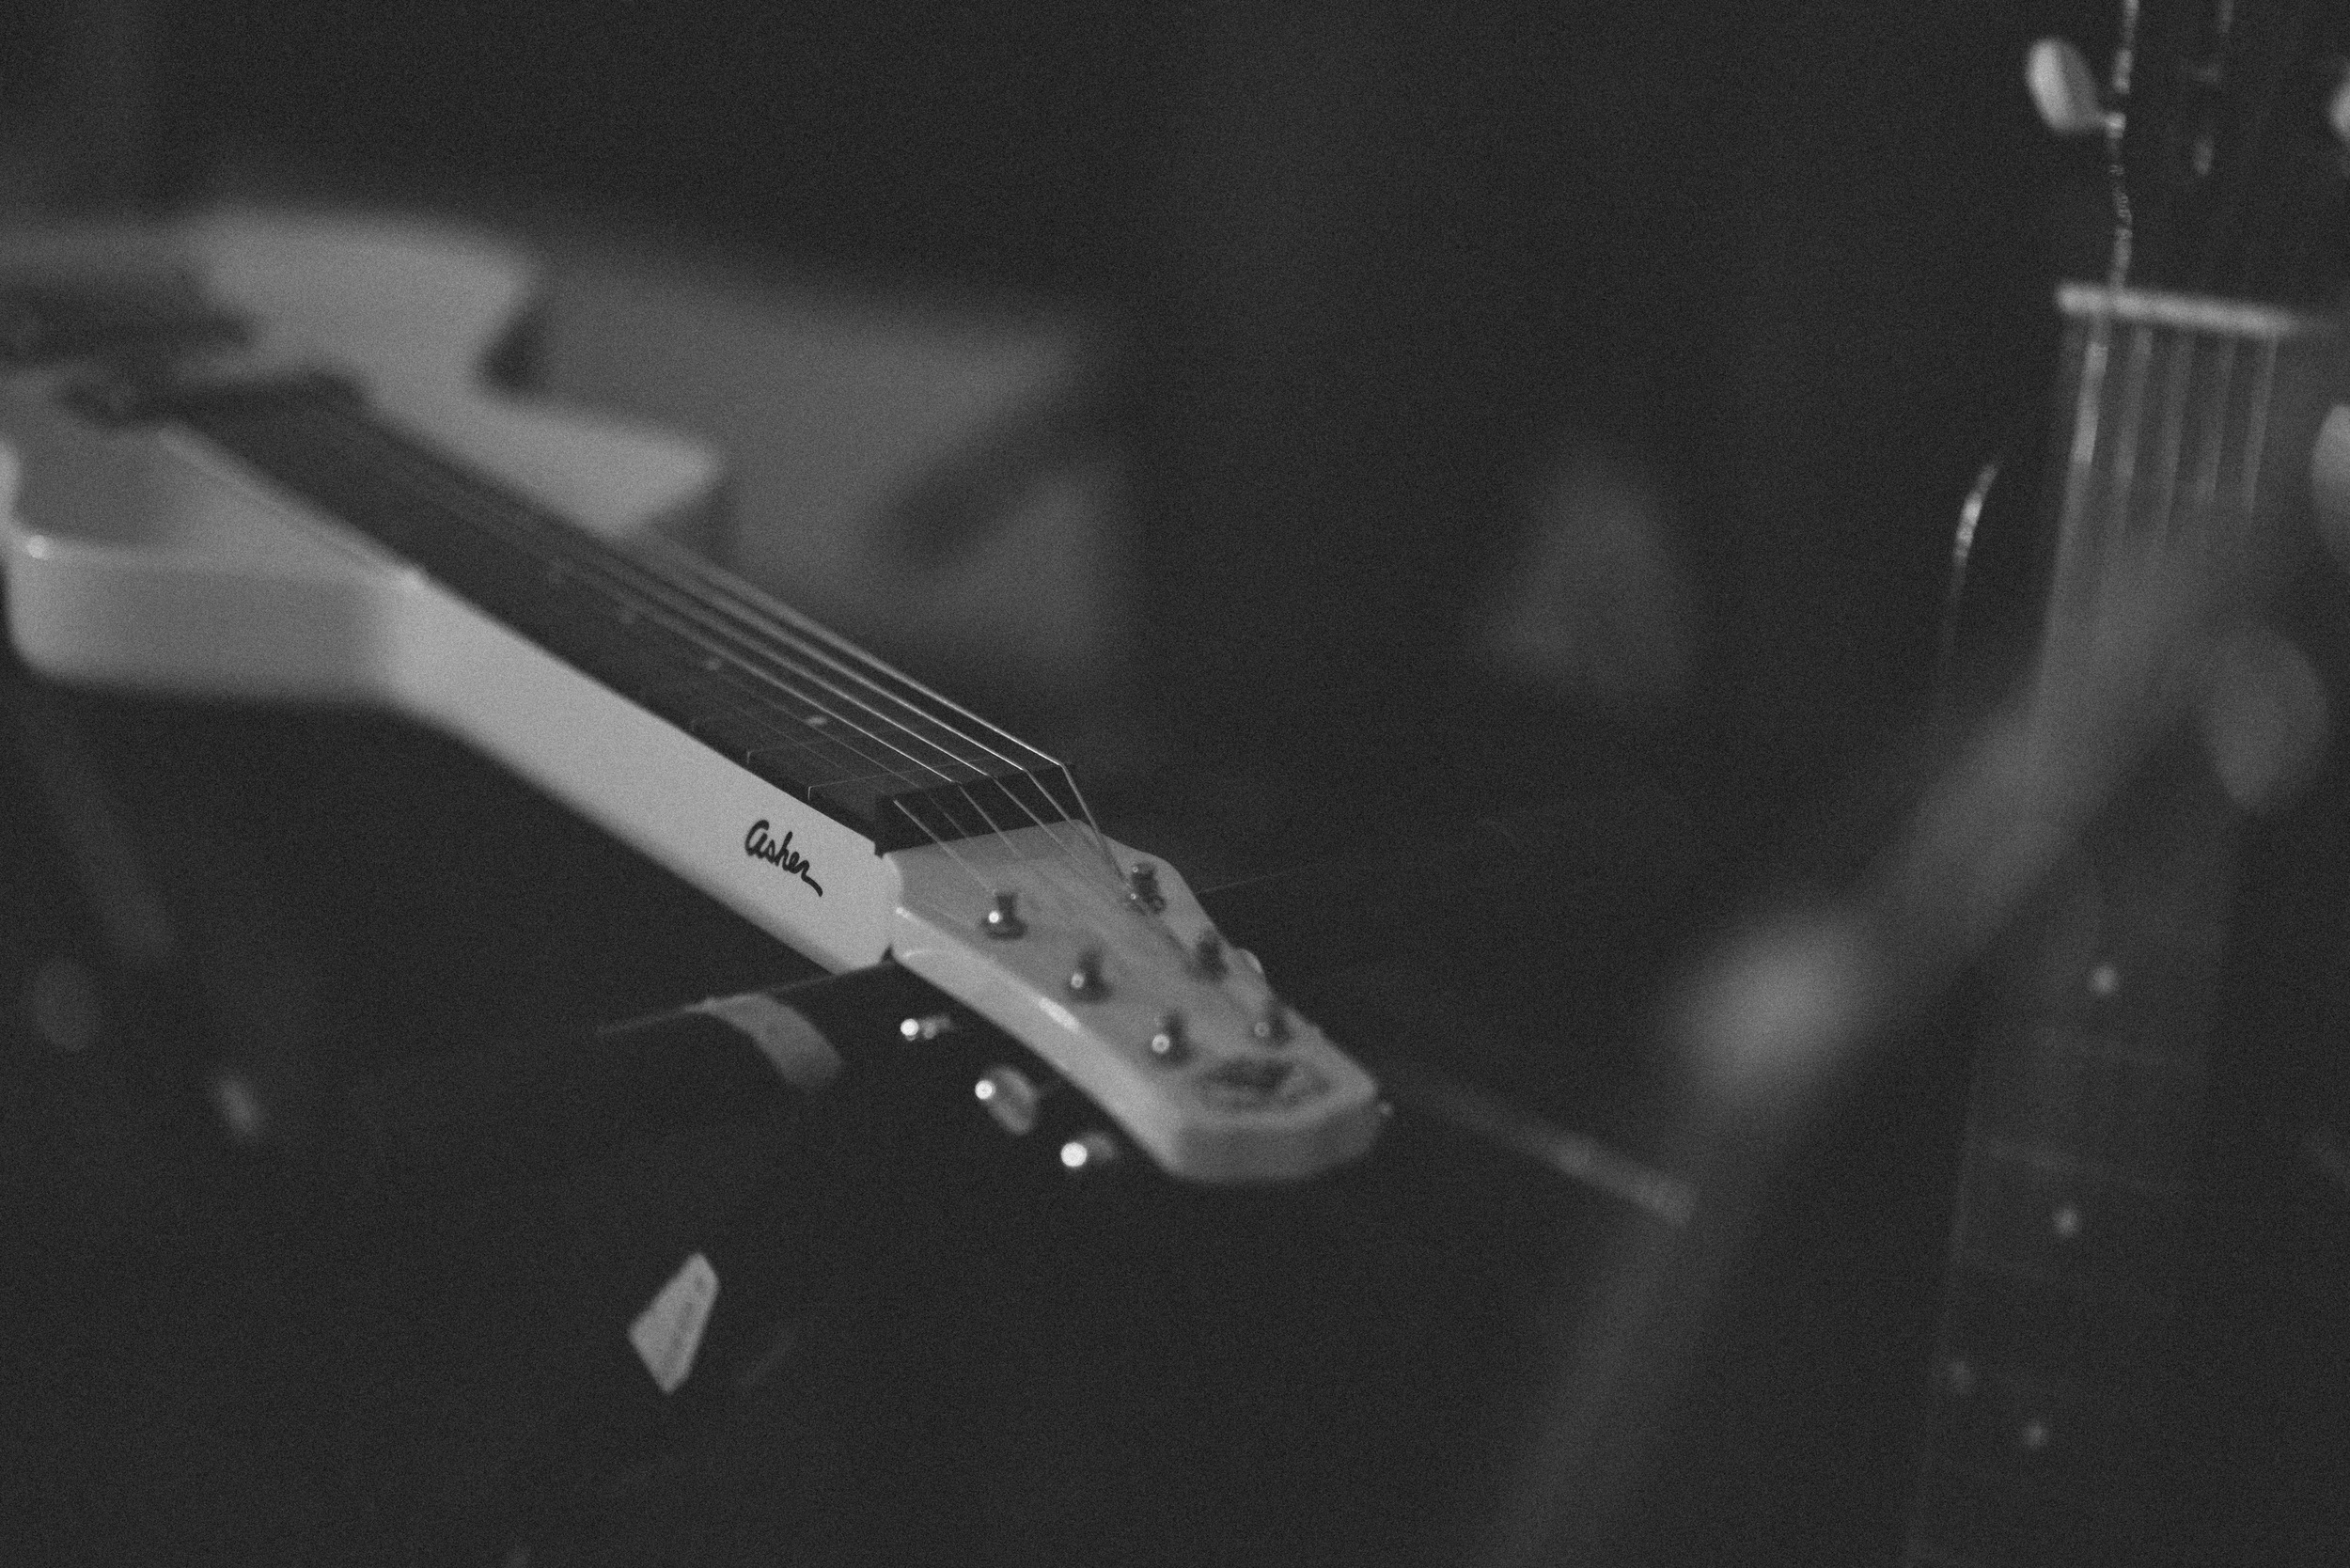 a-day-at-music-school-lap-guitar